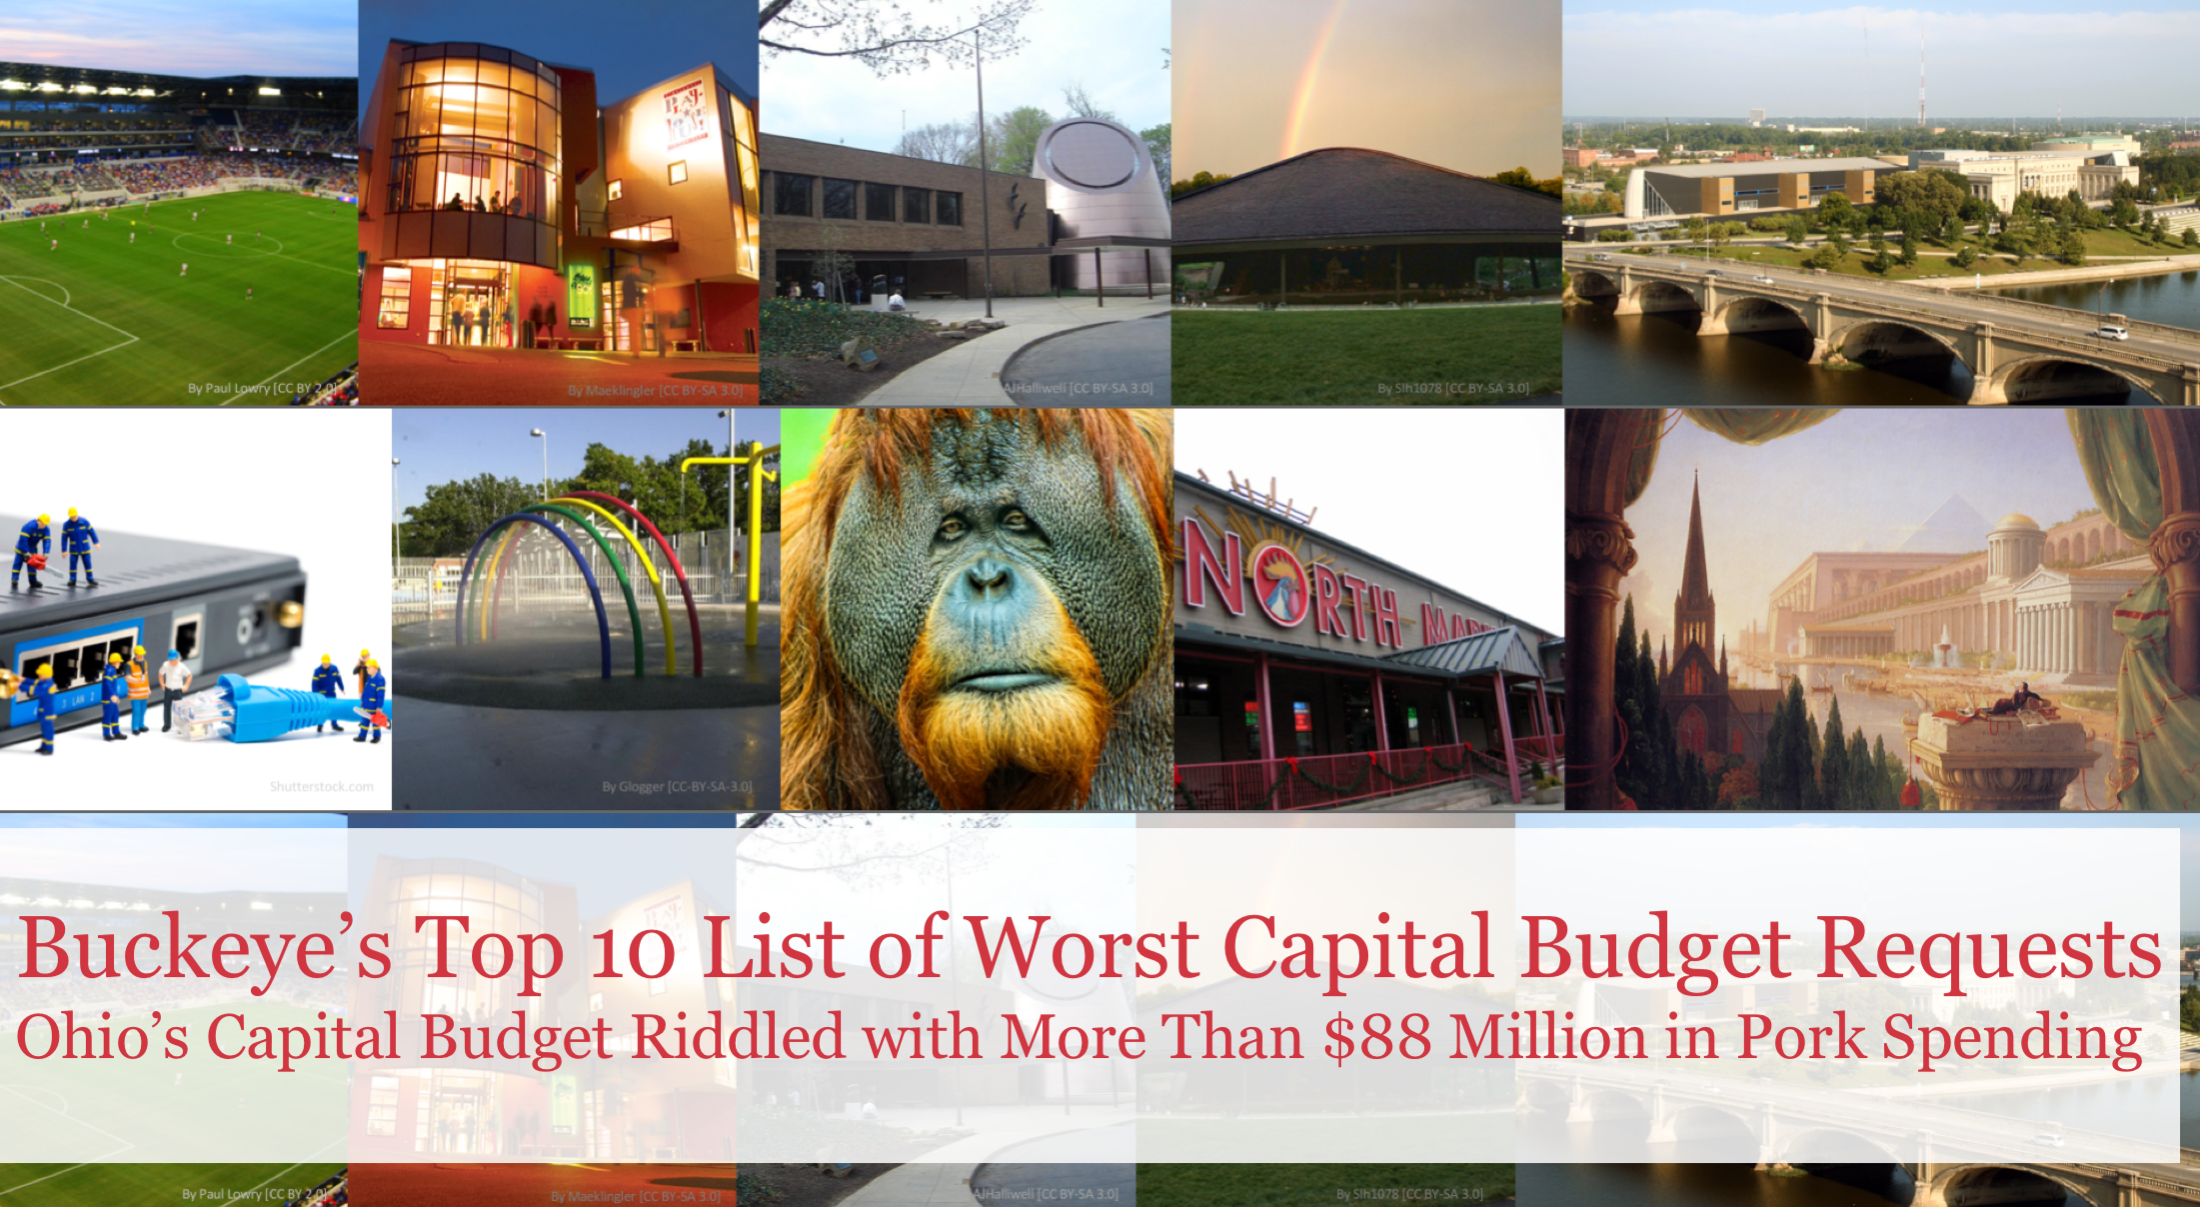 More Than $18 Million Spent on The Buckeye Institute's Top 10 List of Worst Capital Budget Requests